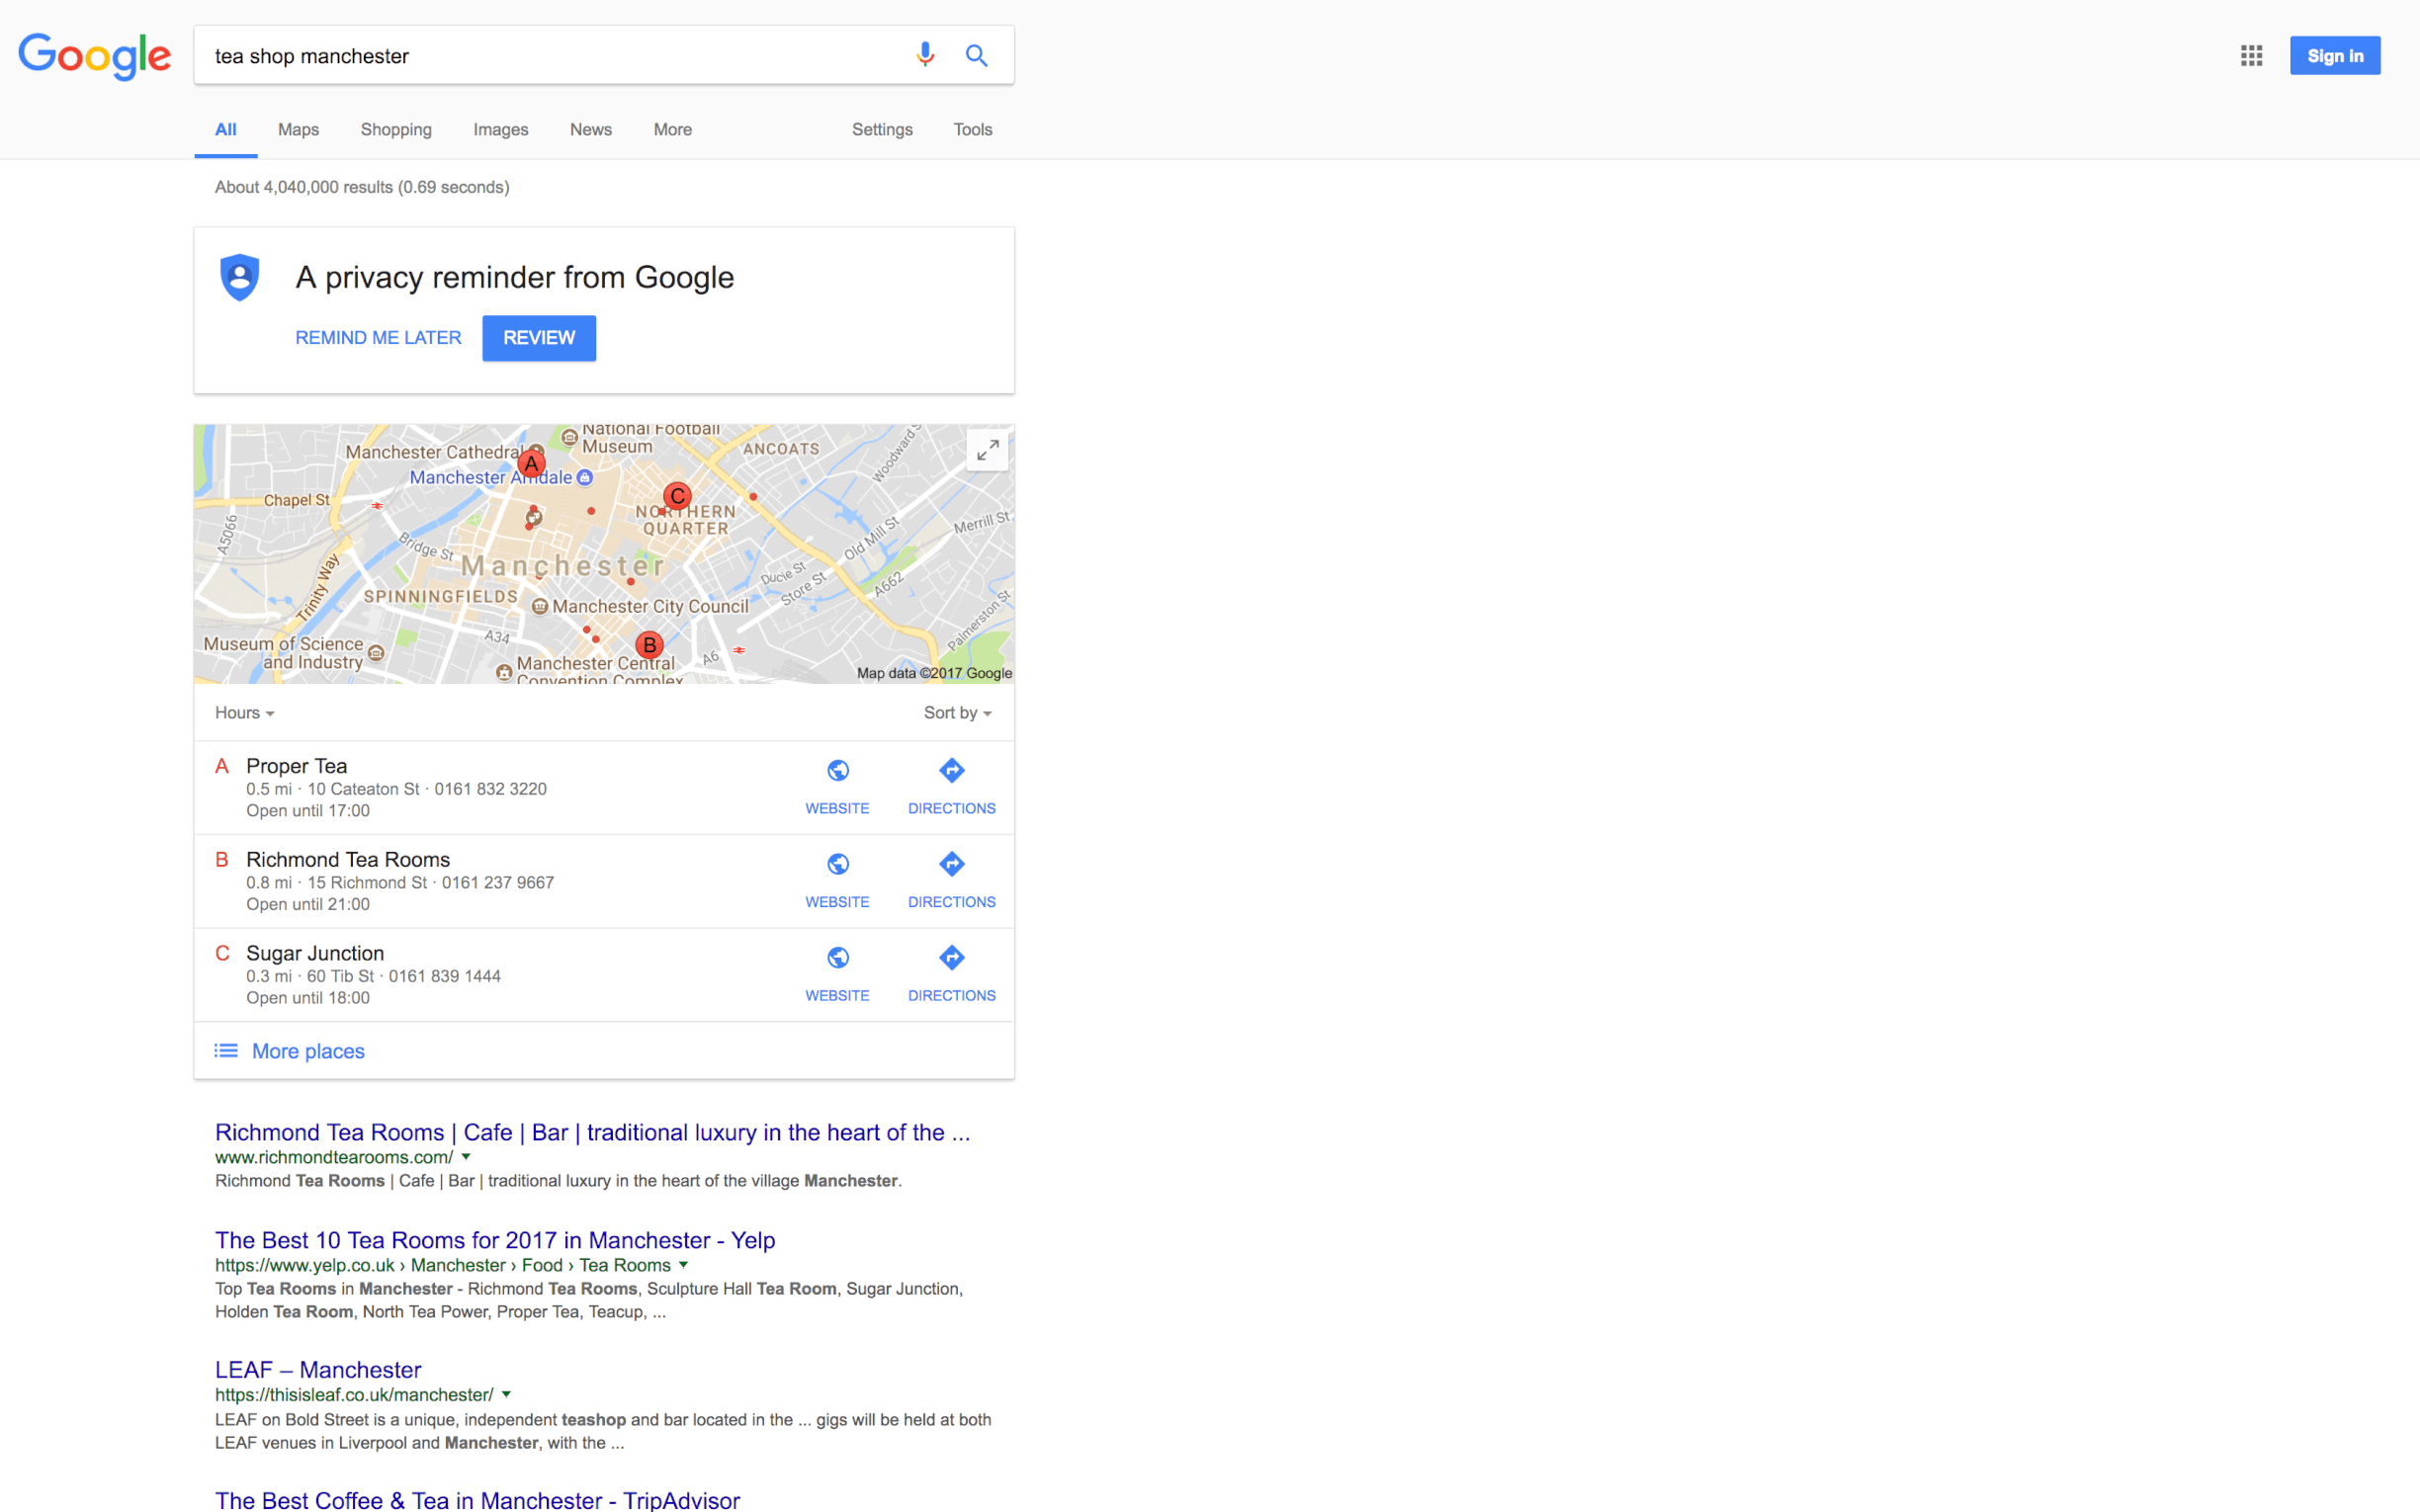 Maps 1 - How do I get more reviews on Google? local-seo